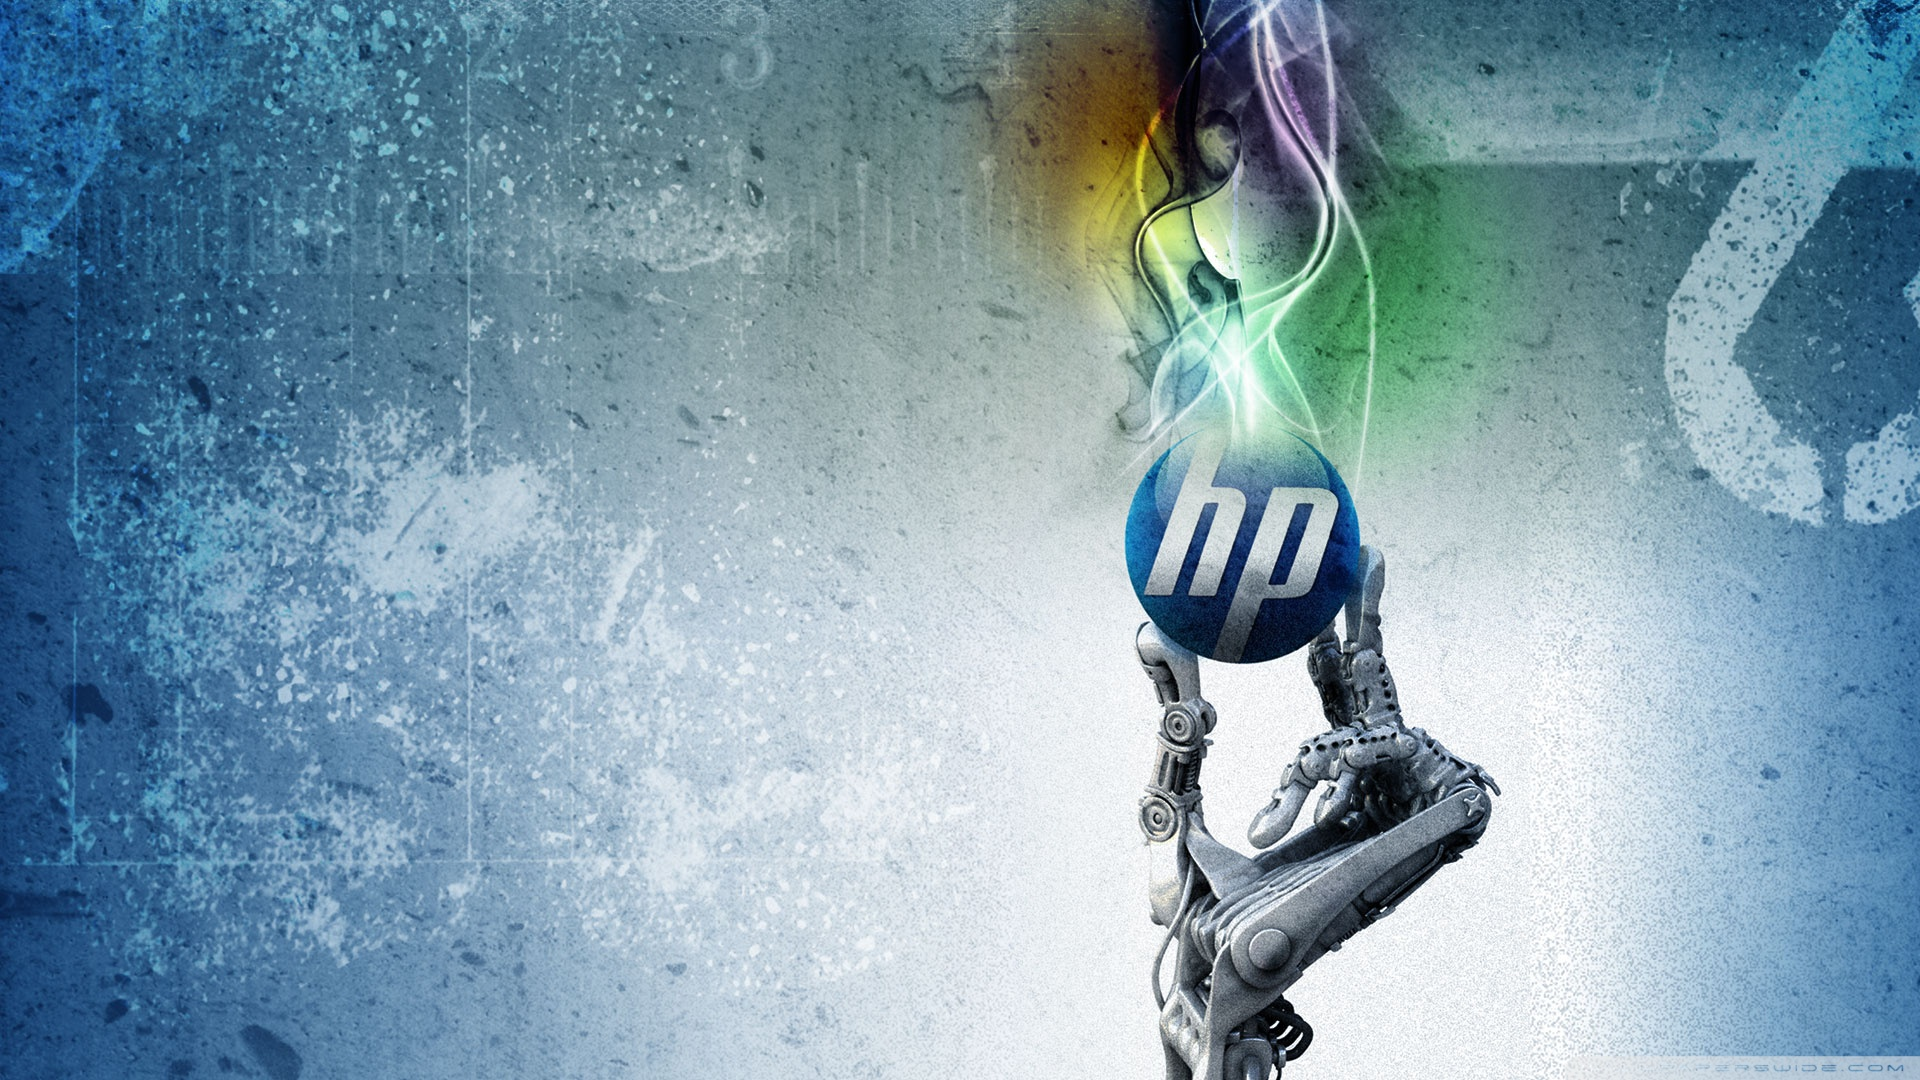 HP wallpaper  1920x1080  42252